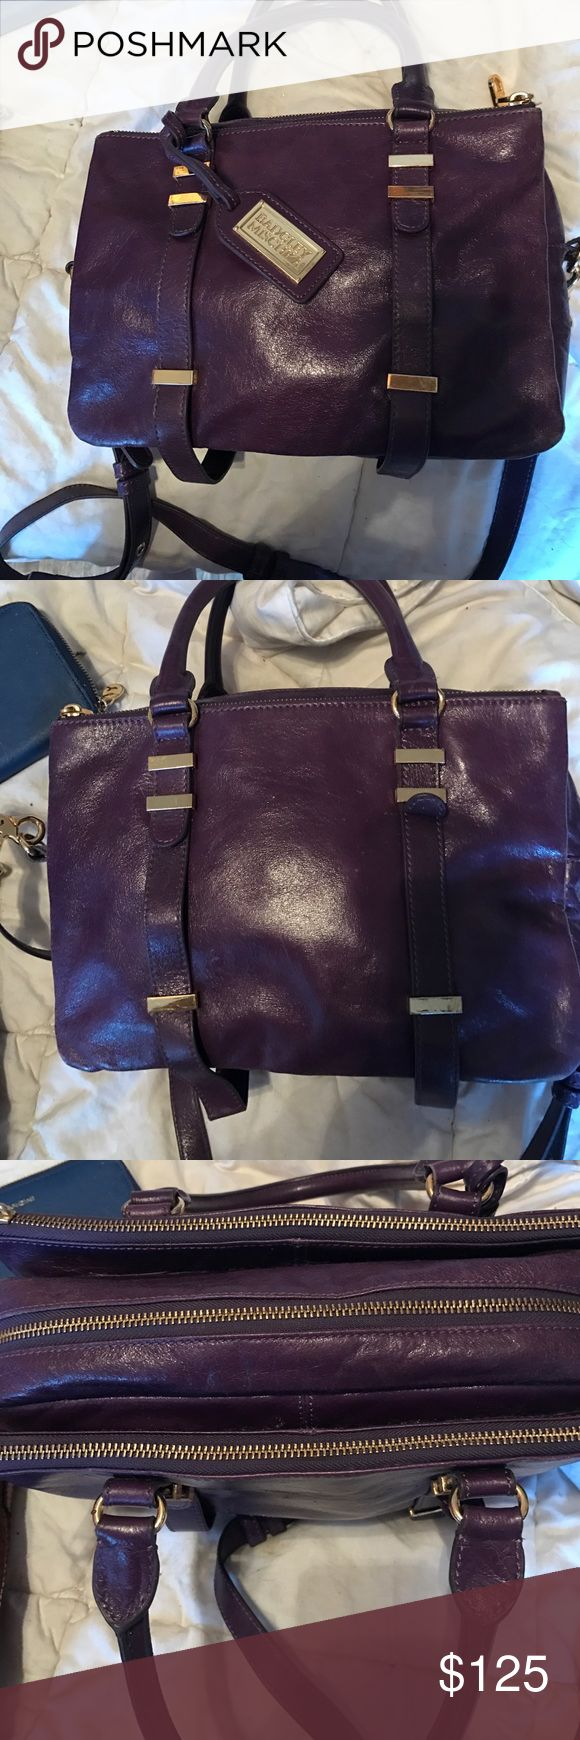 Badgley mischka leather satchel in amethyst Got this great satchel a while ago. Love the purple color. I couldn't find the official name of it however. It's a nice square shape,  3 sections all zippered. Has shoulder strap. Very slight claw marks visible in second photo. Badgley Mischka Bags Satchels